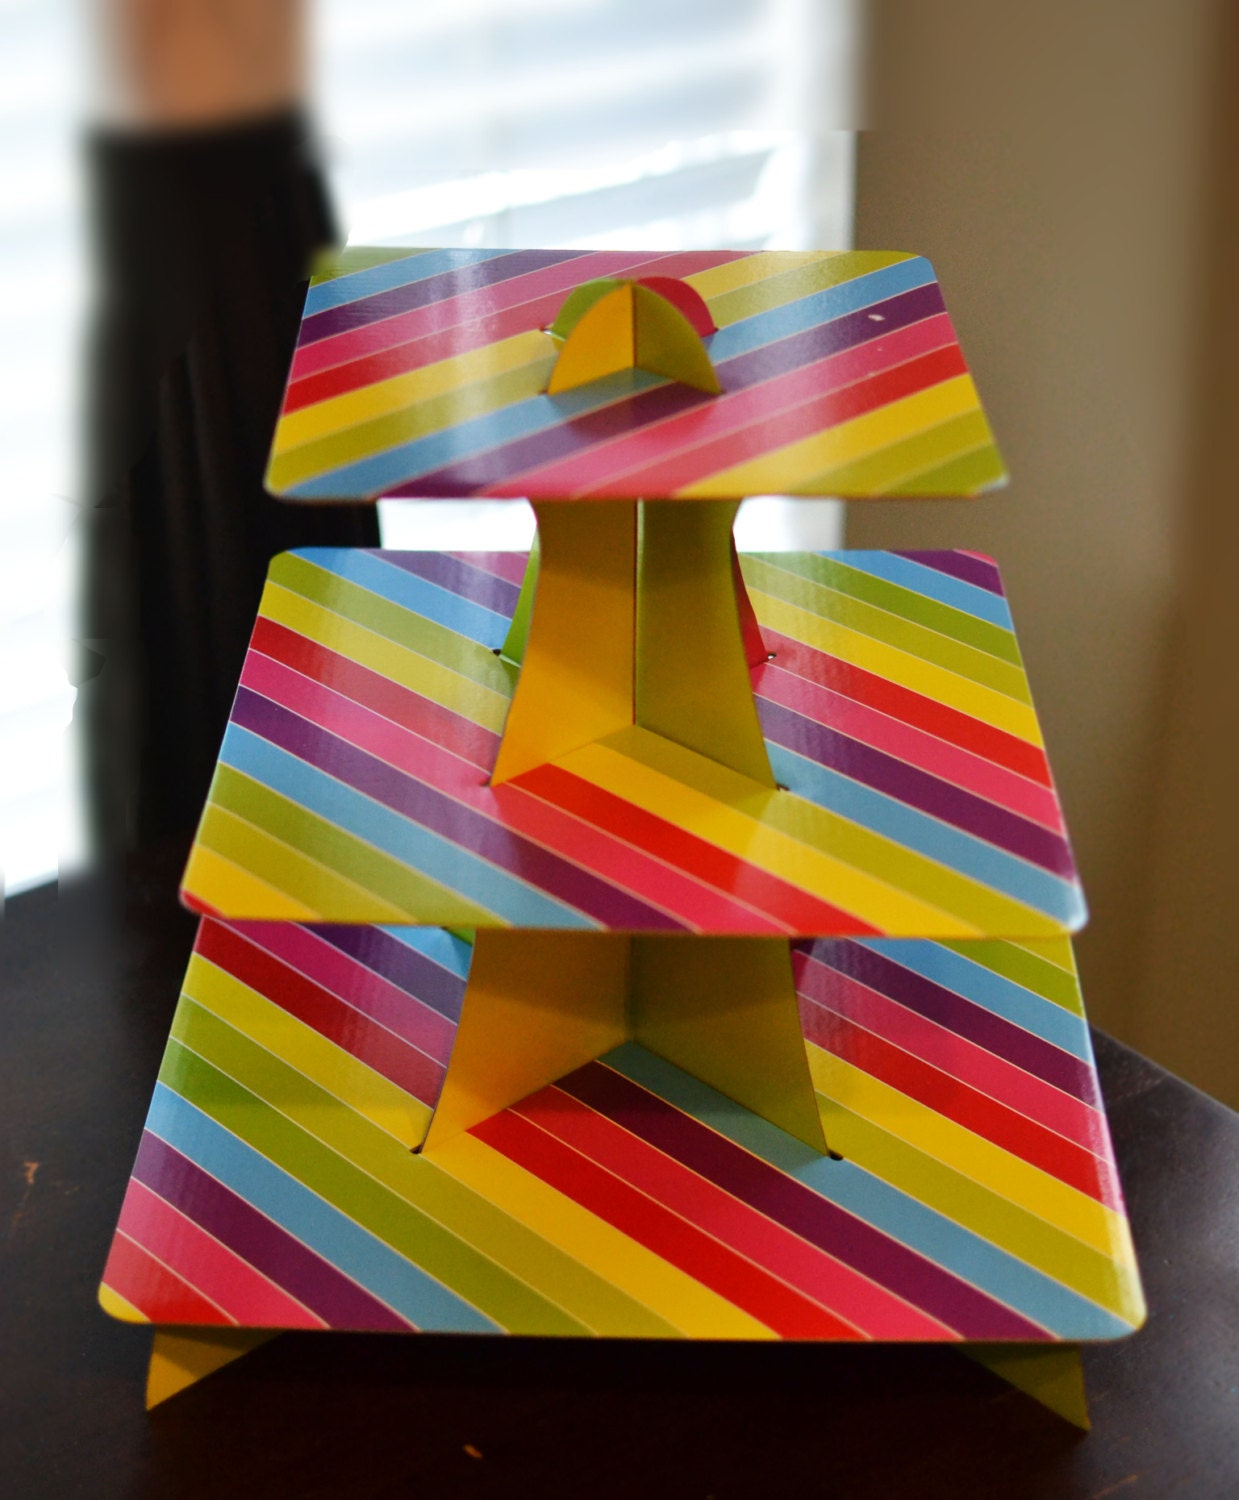 3 tier rainbow cupcake stand cardboard by luxepartysupply on etsy. Black Bedroom Furniture Sets. Home Design Ideas